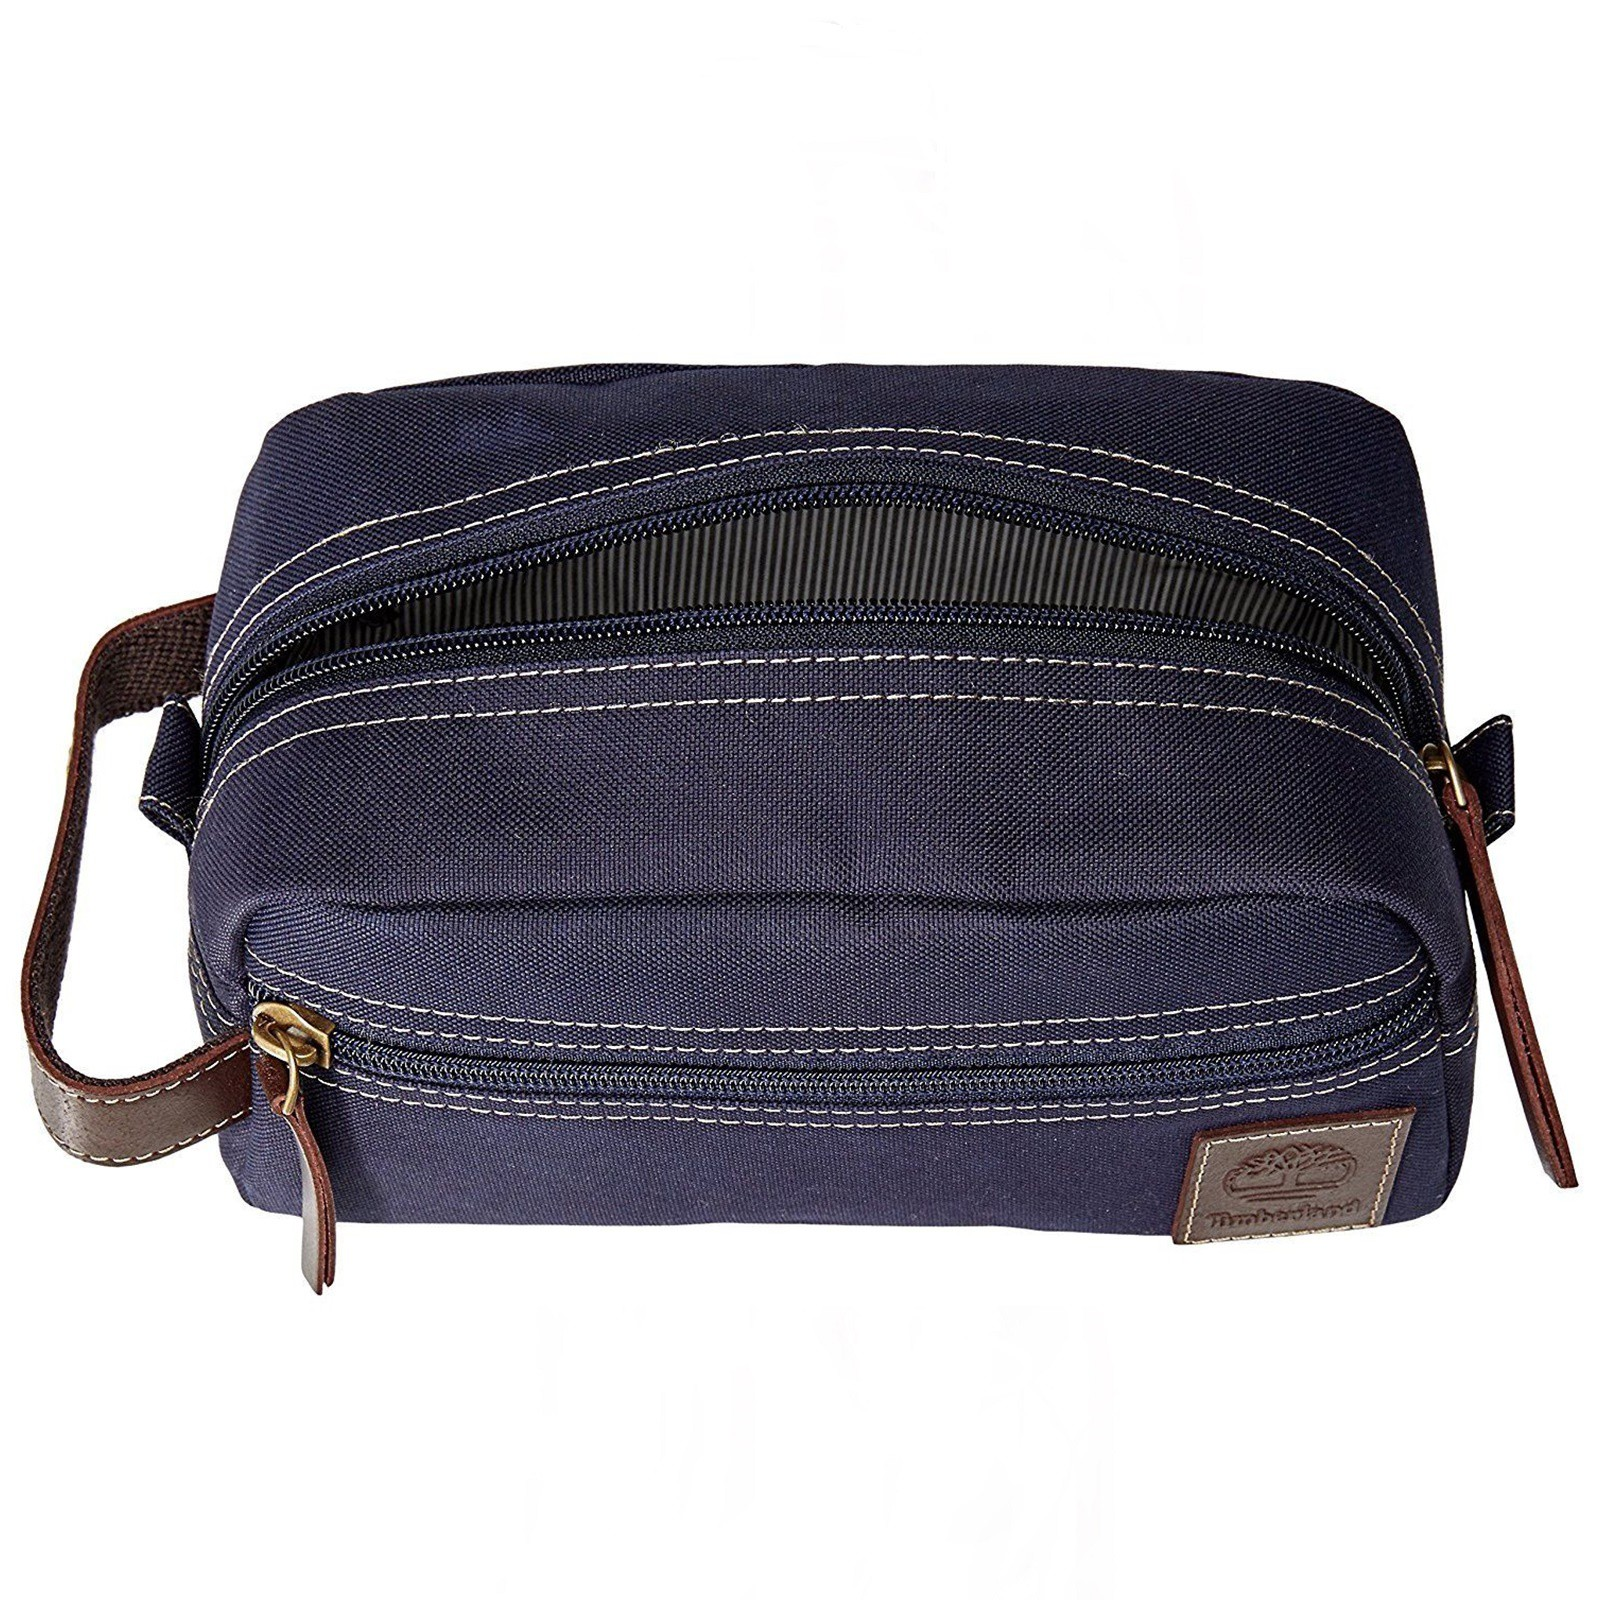 Timberland Men s Canvas Shave Kit Organizer Toiletry Bag Overnight ... 34609c9199